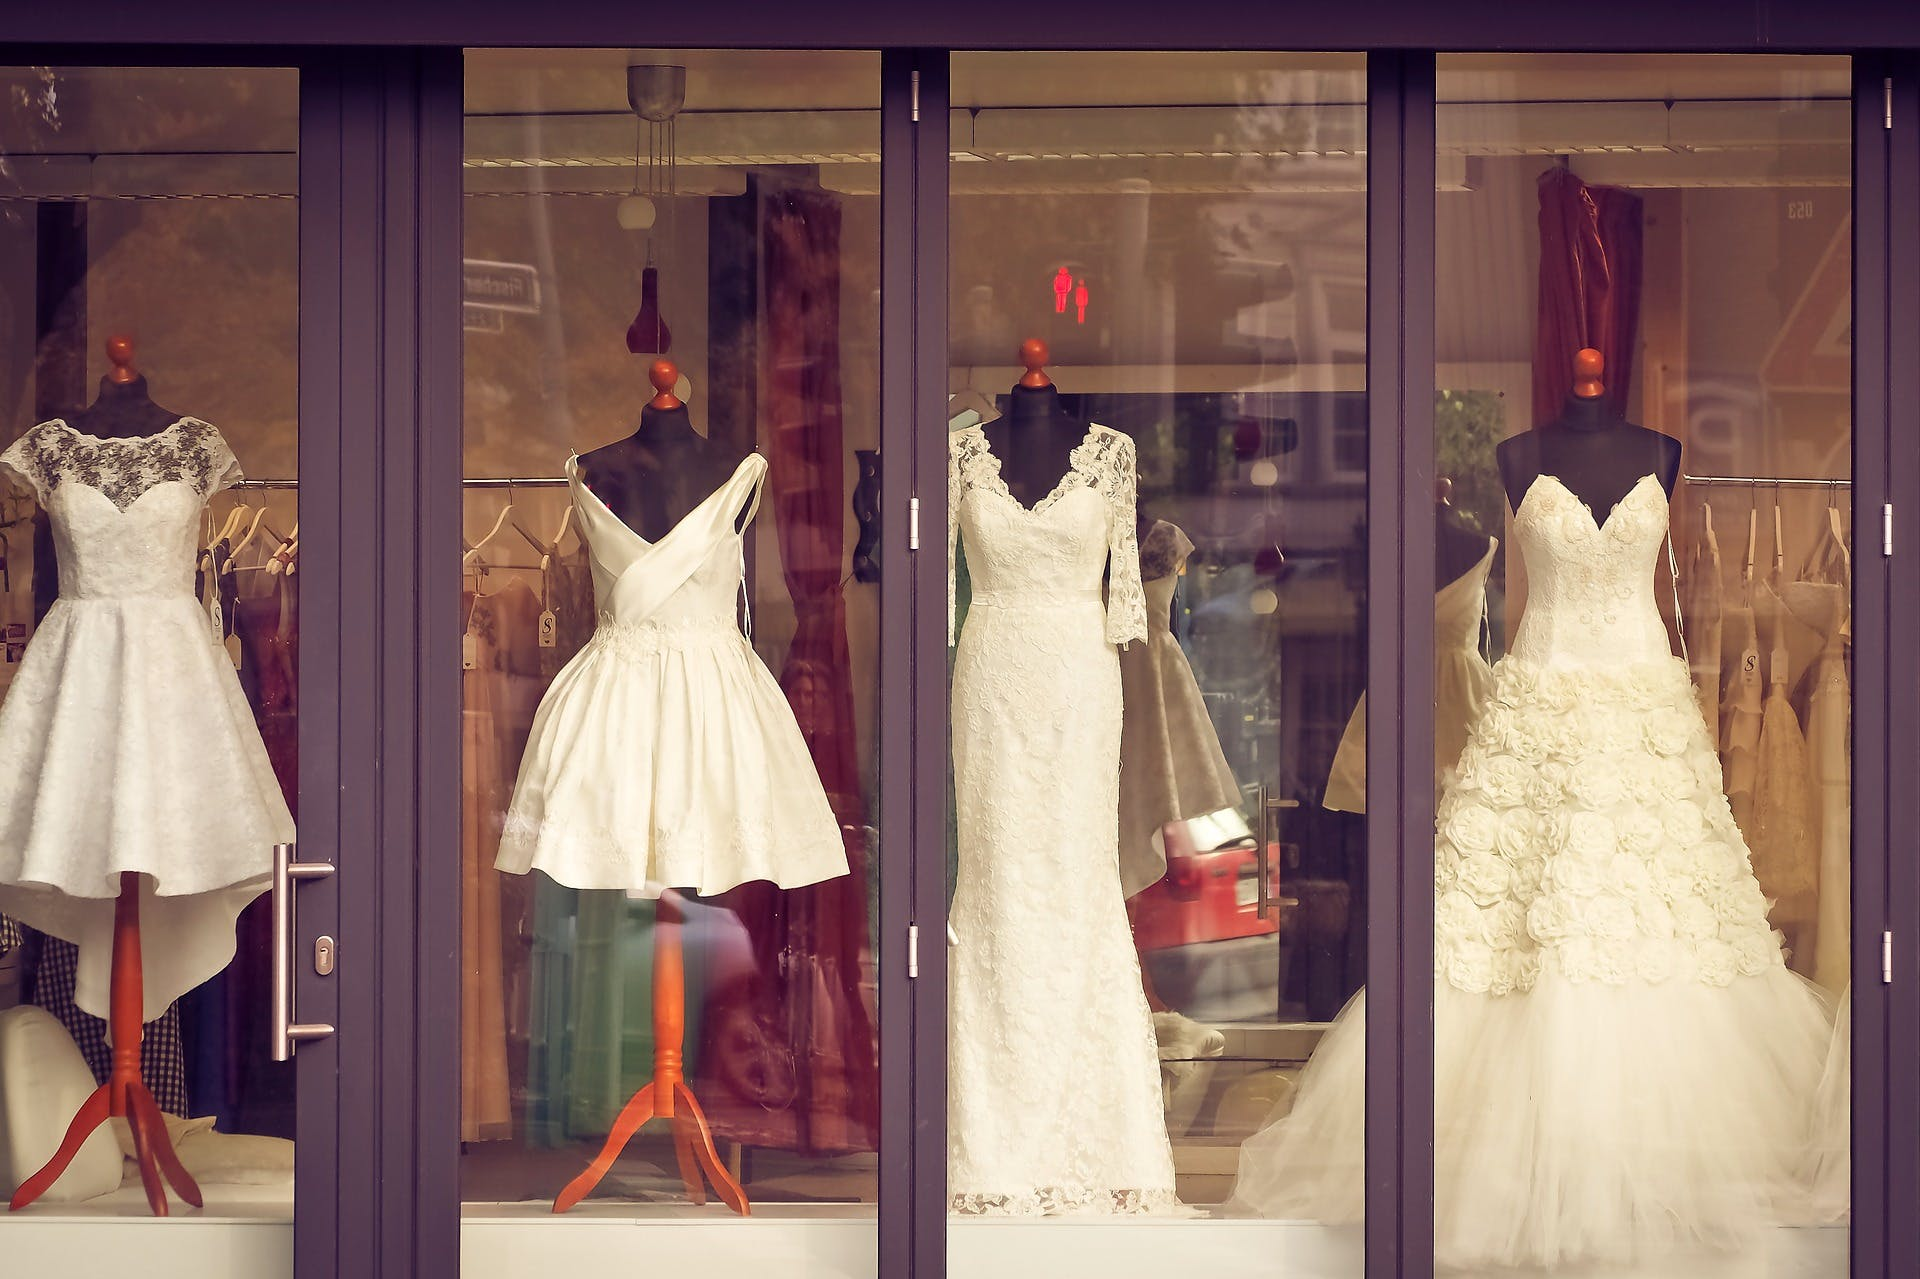 One of many wedding gown boutiques housed in colonial shophouses in the Tanjong Pagar Neighbourhood